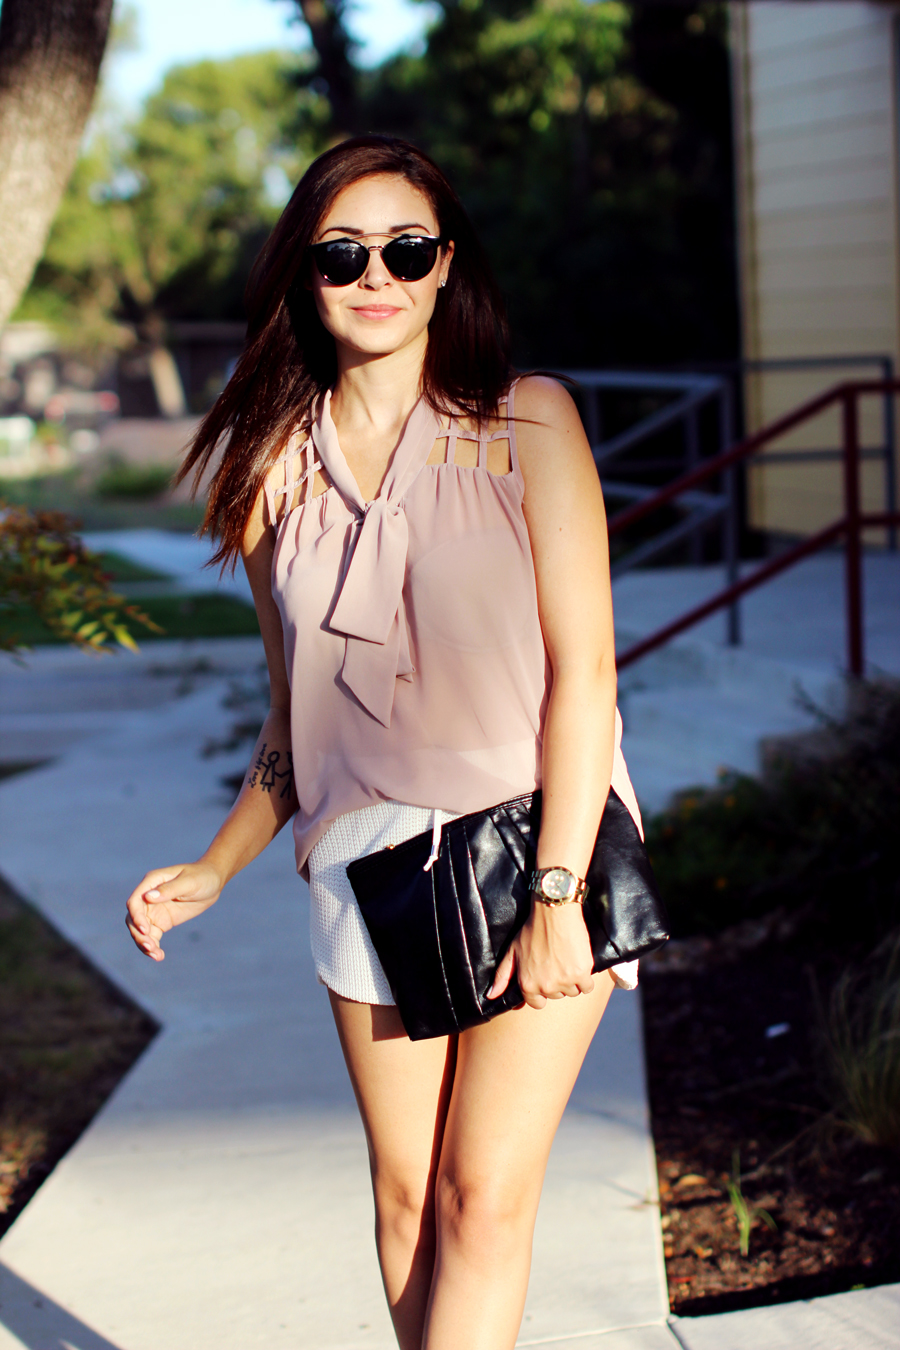 WHITE-SHORTS-ATHLETIC-NEUTRALS-GLAM-STYLIST-CLASSIC-SUMMER-STYLE-FIXIN-TO-THRILL-AUSTIN-FASHION-BLOG-TEXAS-9